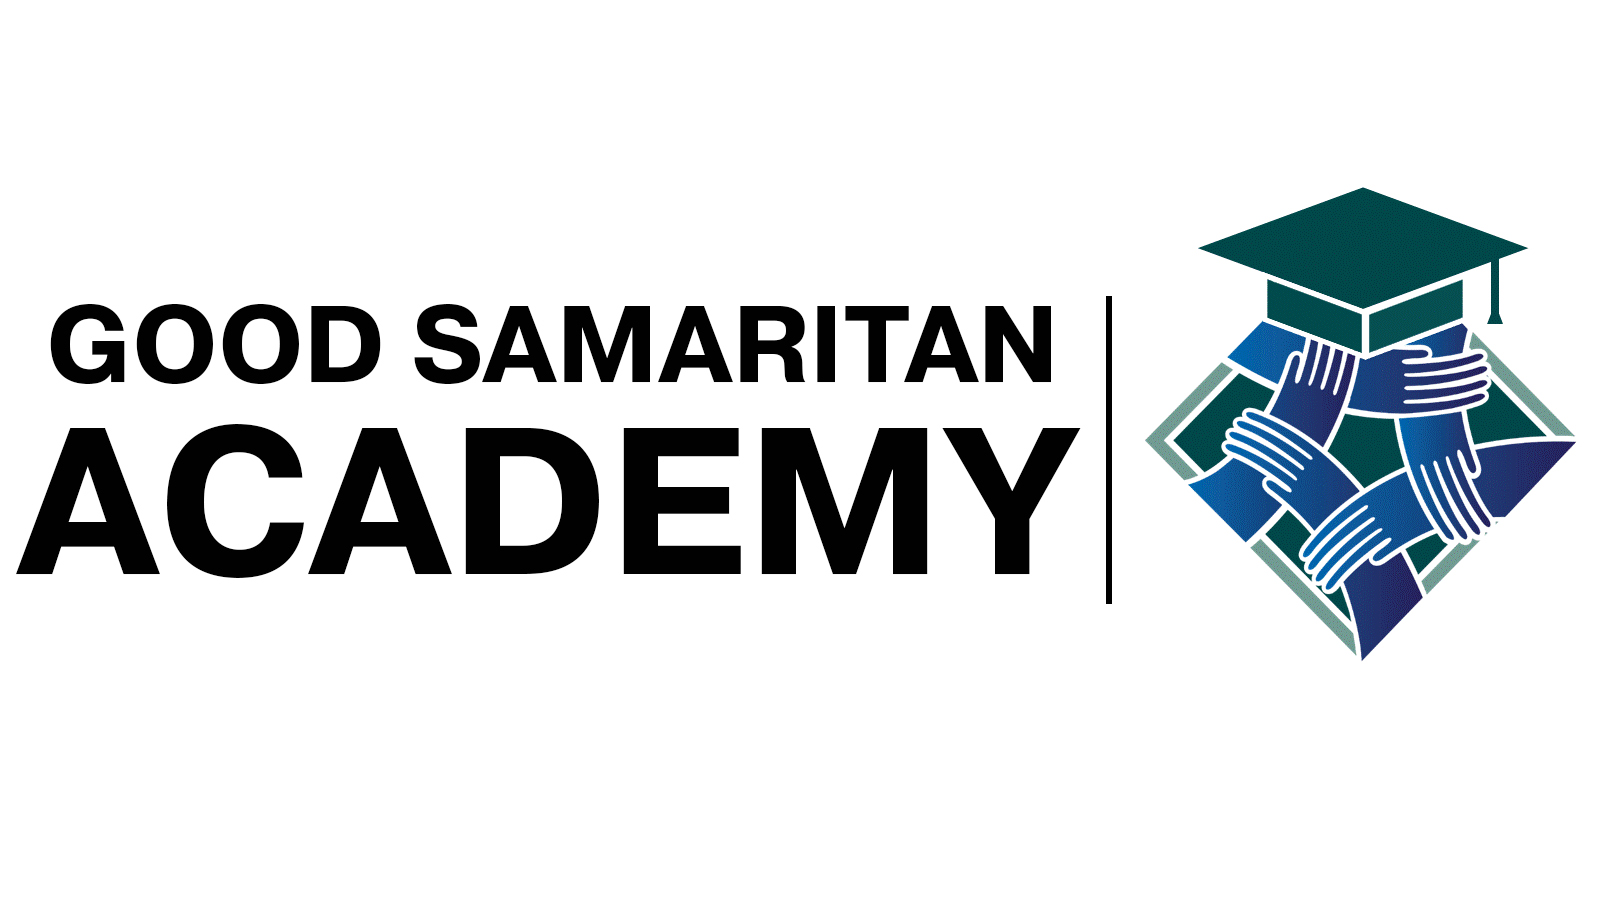 Good Samaritan Academy